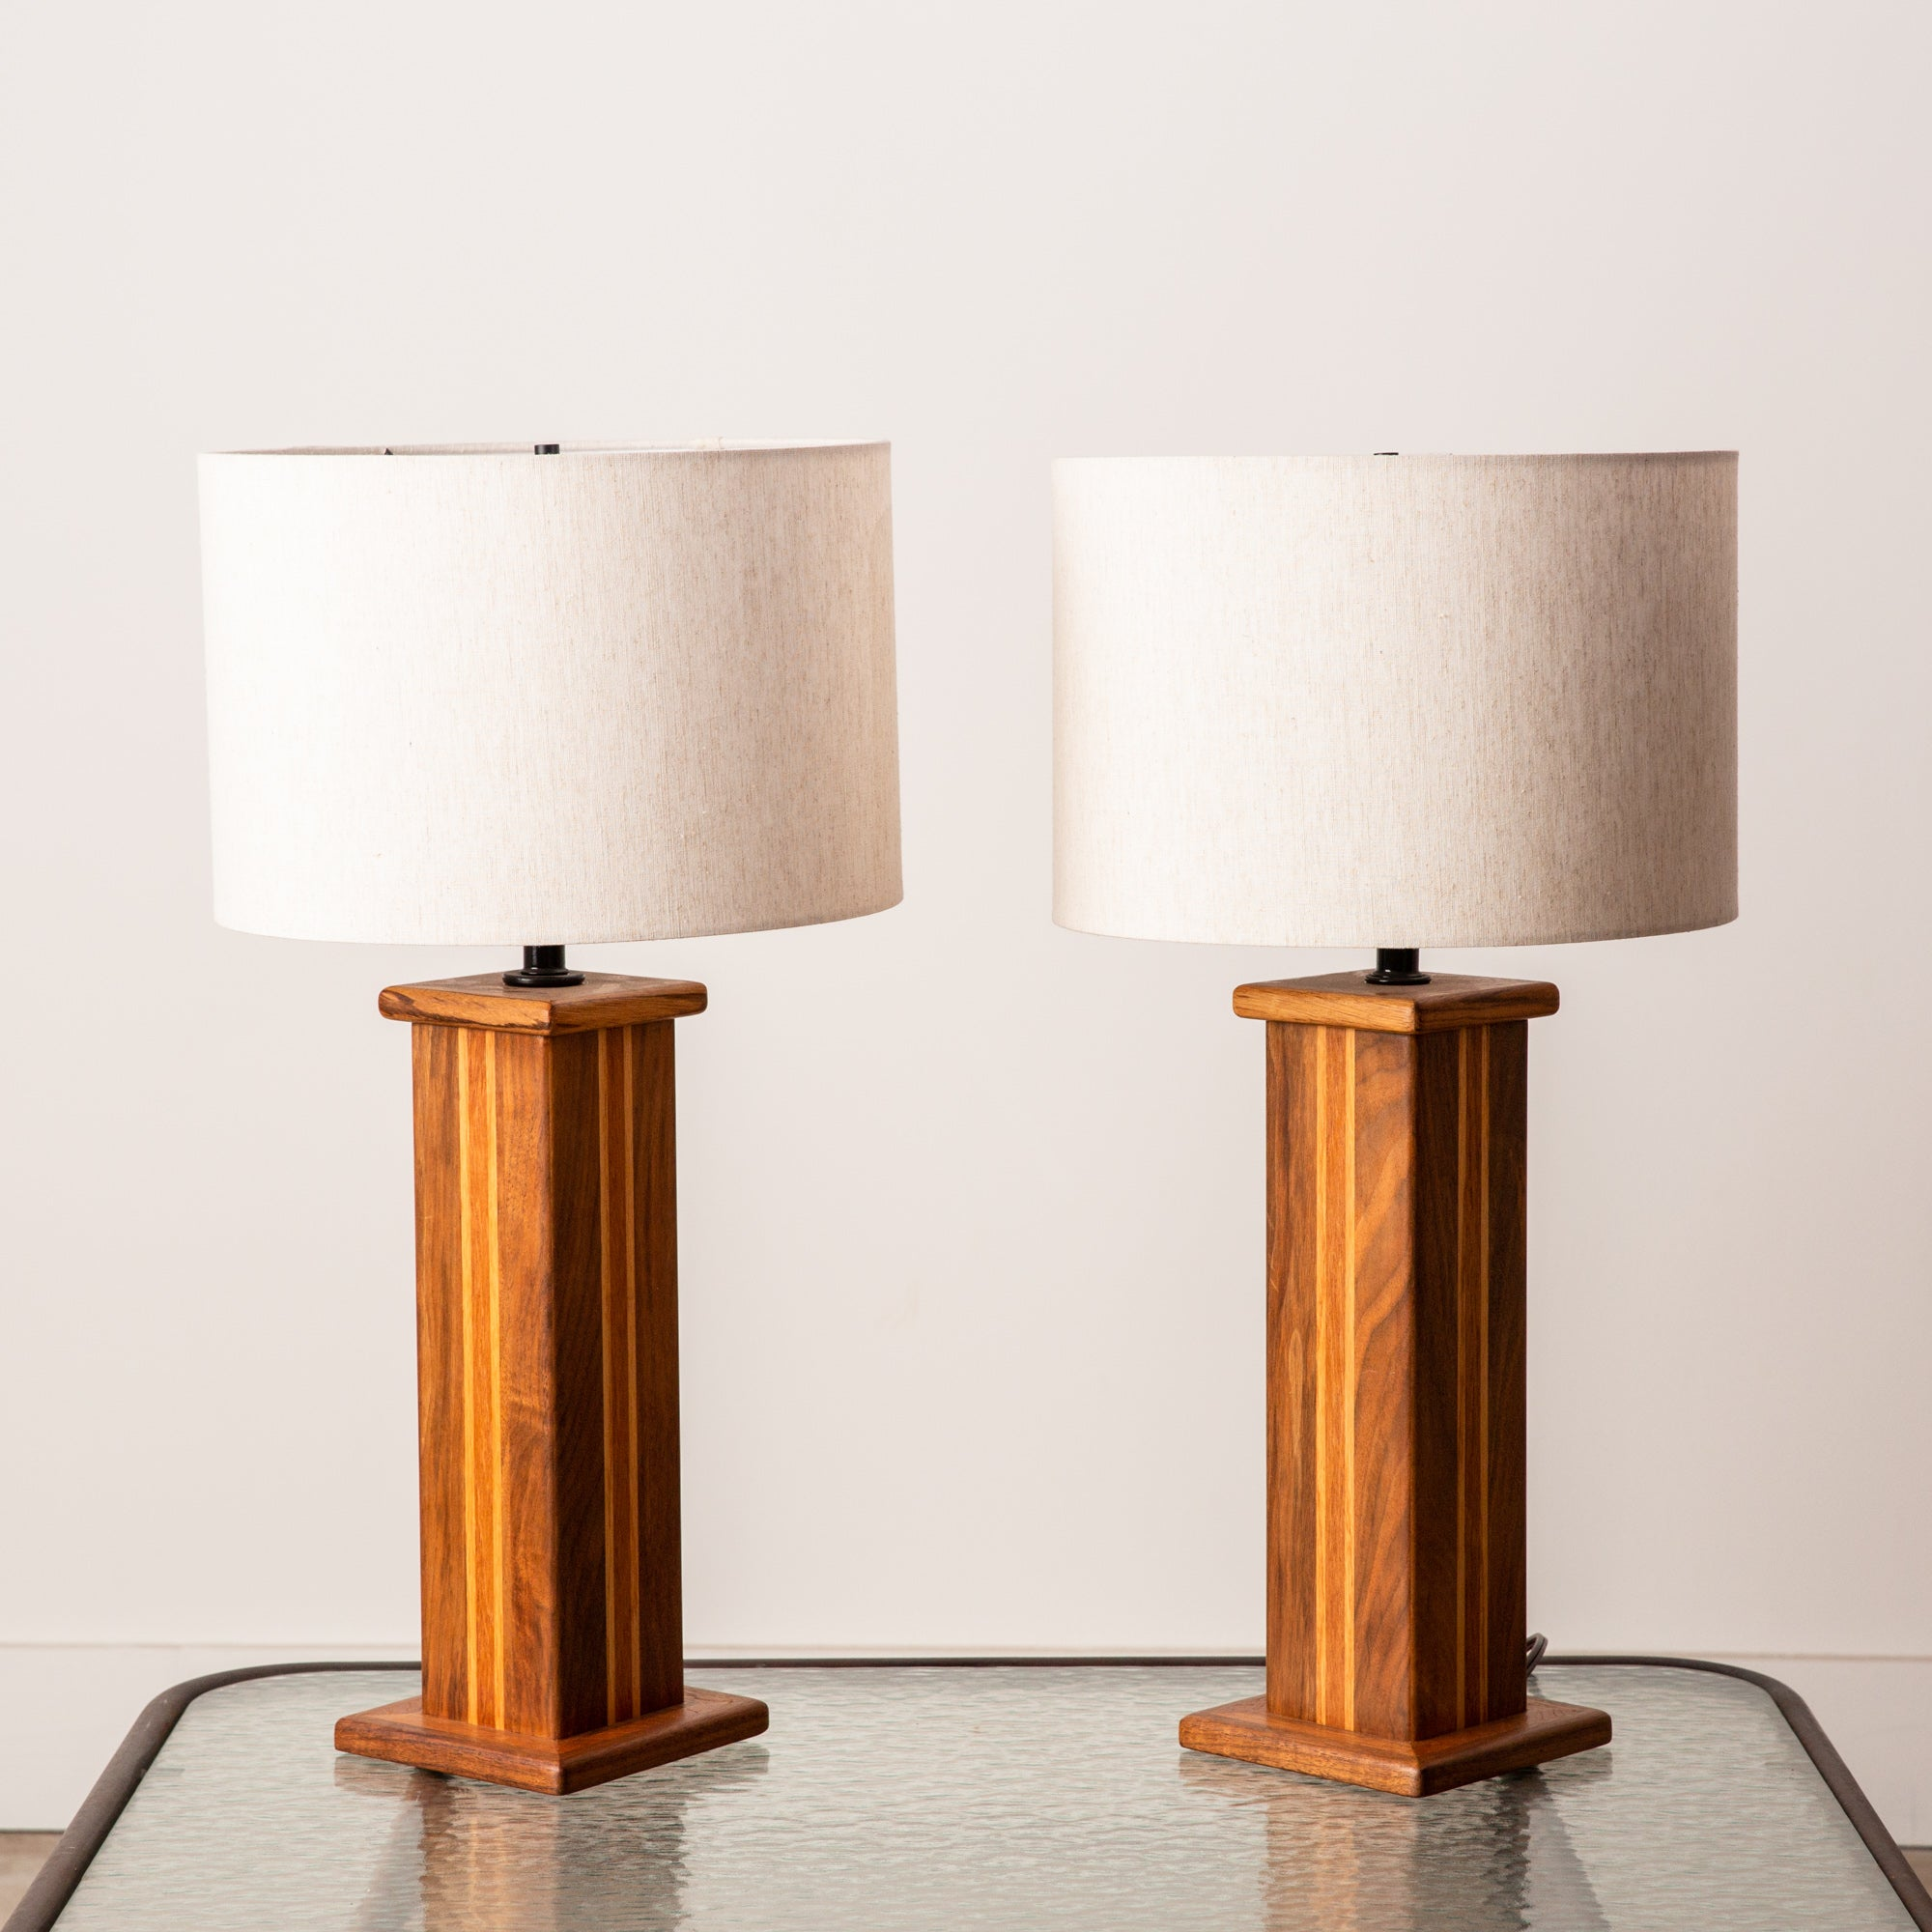 Pair of Studio Craft Lamps in Mixed Woods